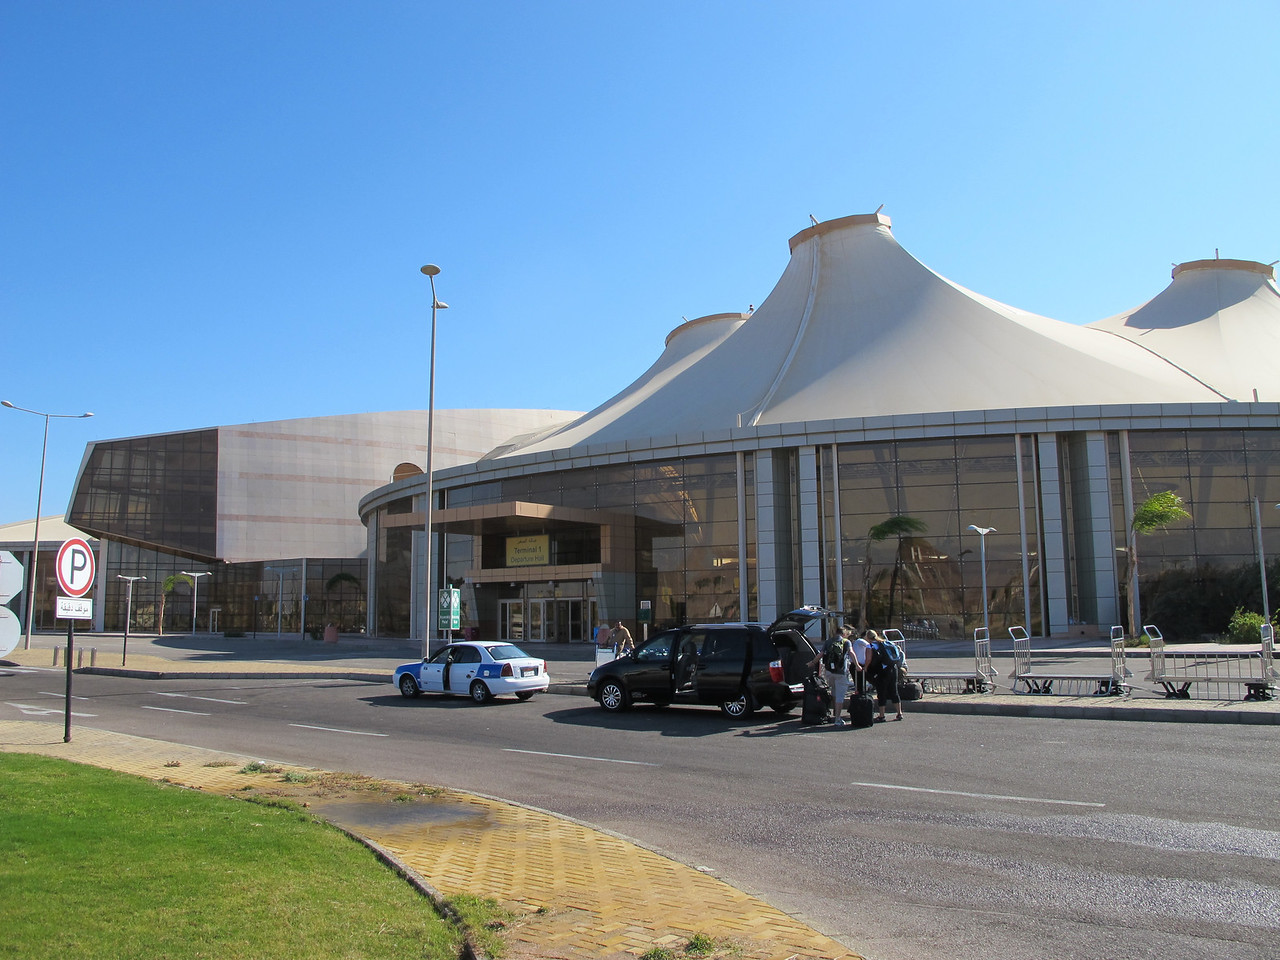 The airport is rather new and is located about 30 minutes from the actual town of Sharm El Sheikh.